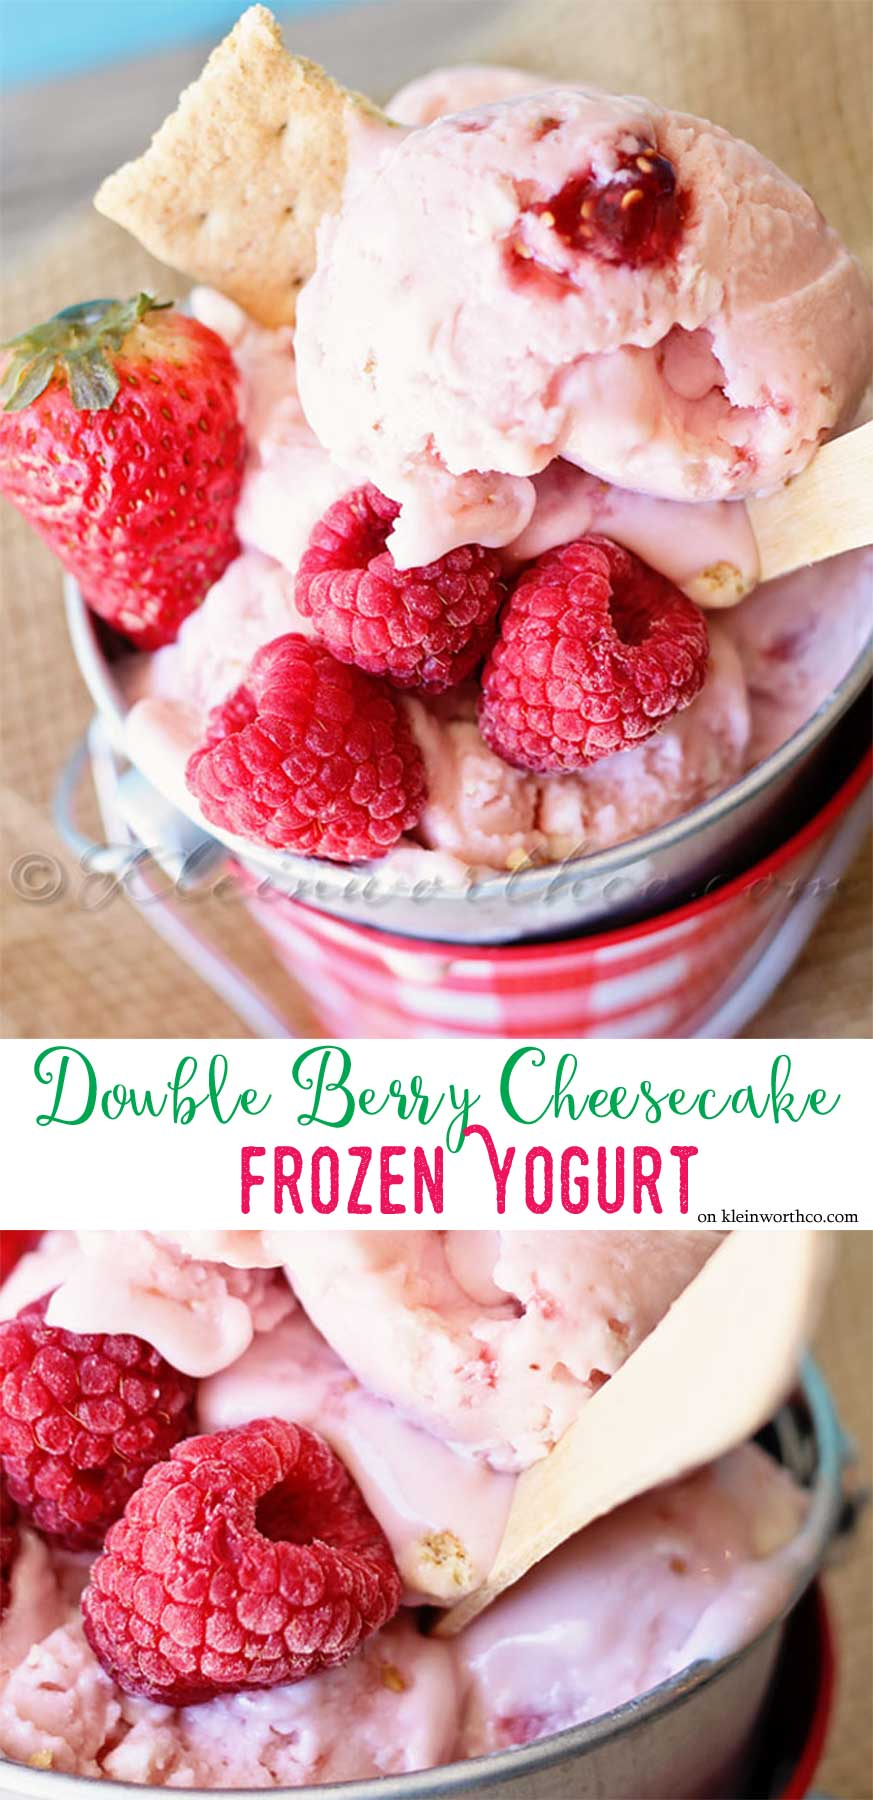 Double Berry Cheesecake Frozen Yogurt is a simple berry packed homemade frozen dessert that the whole family will love all summer long.